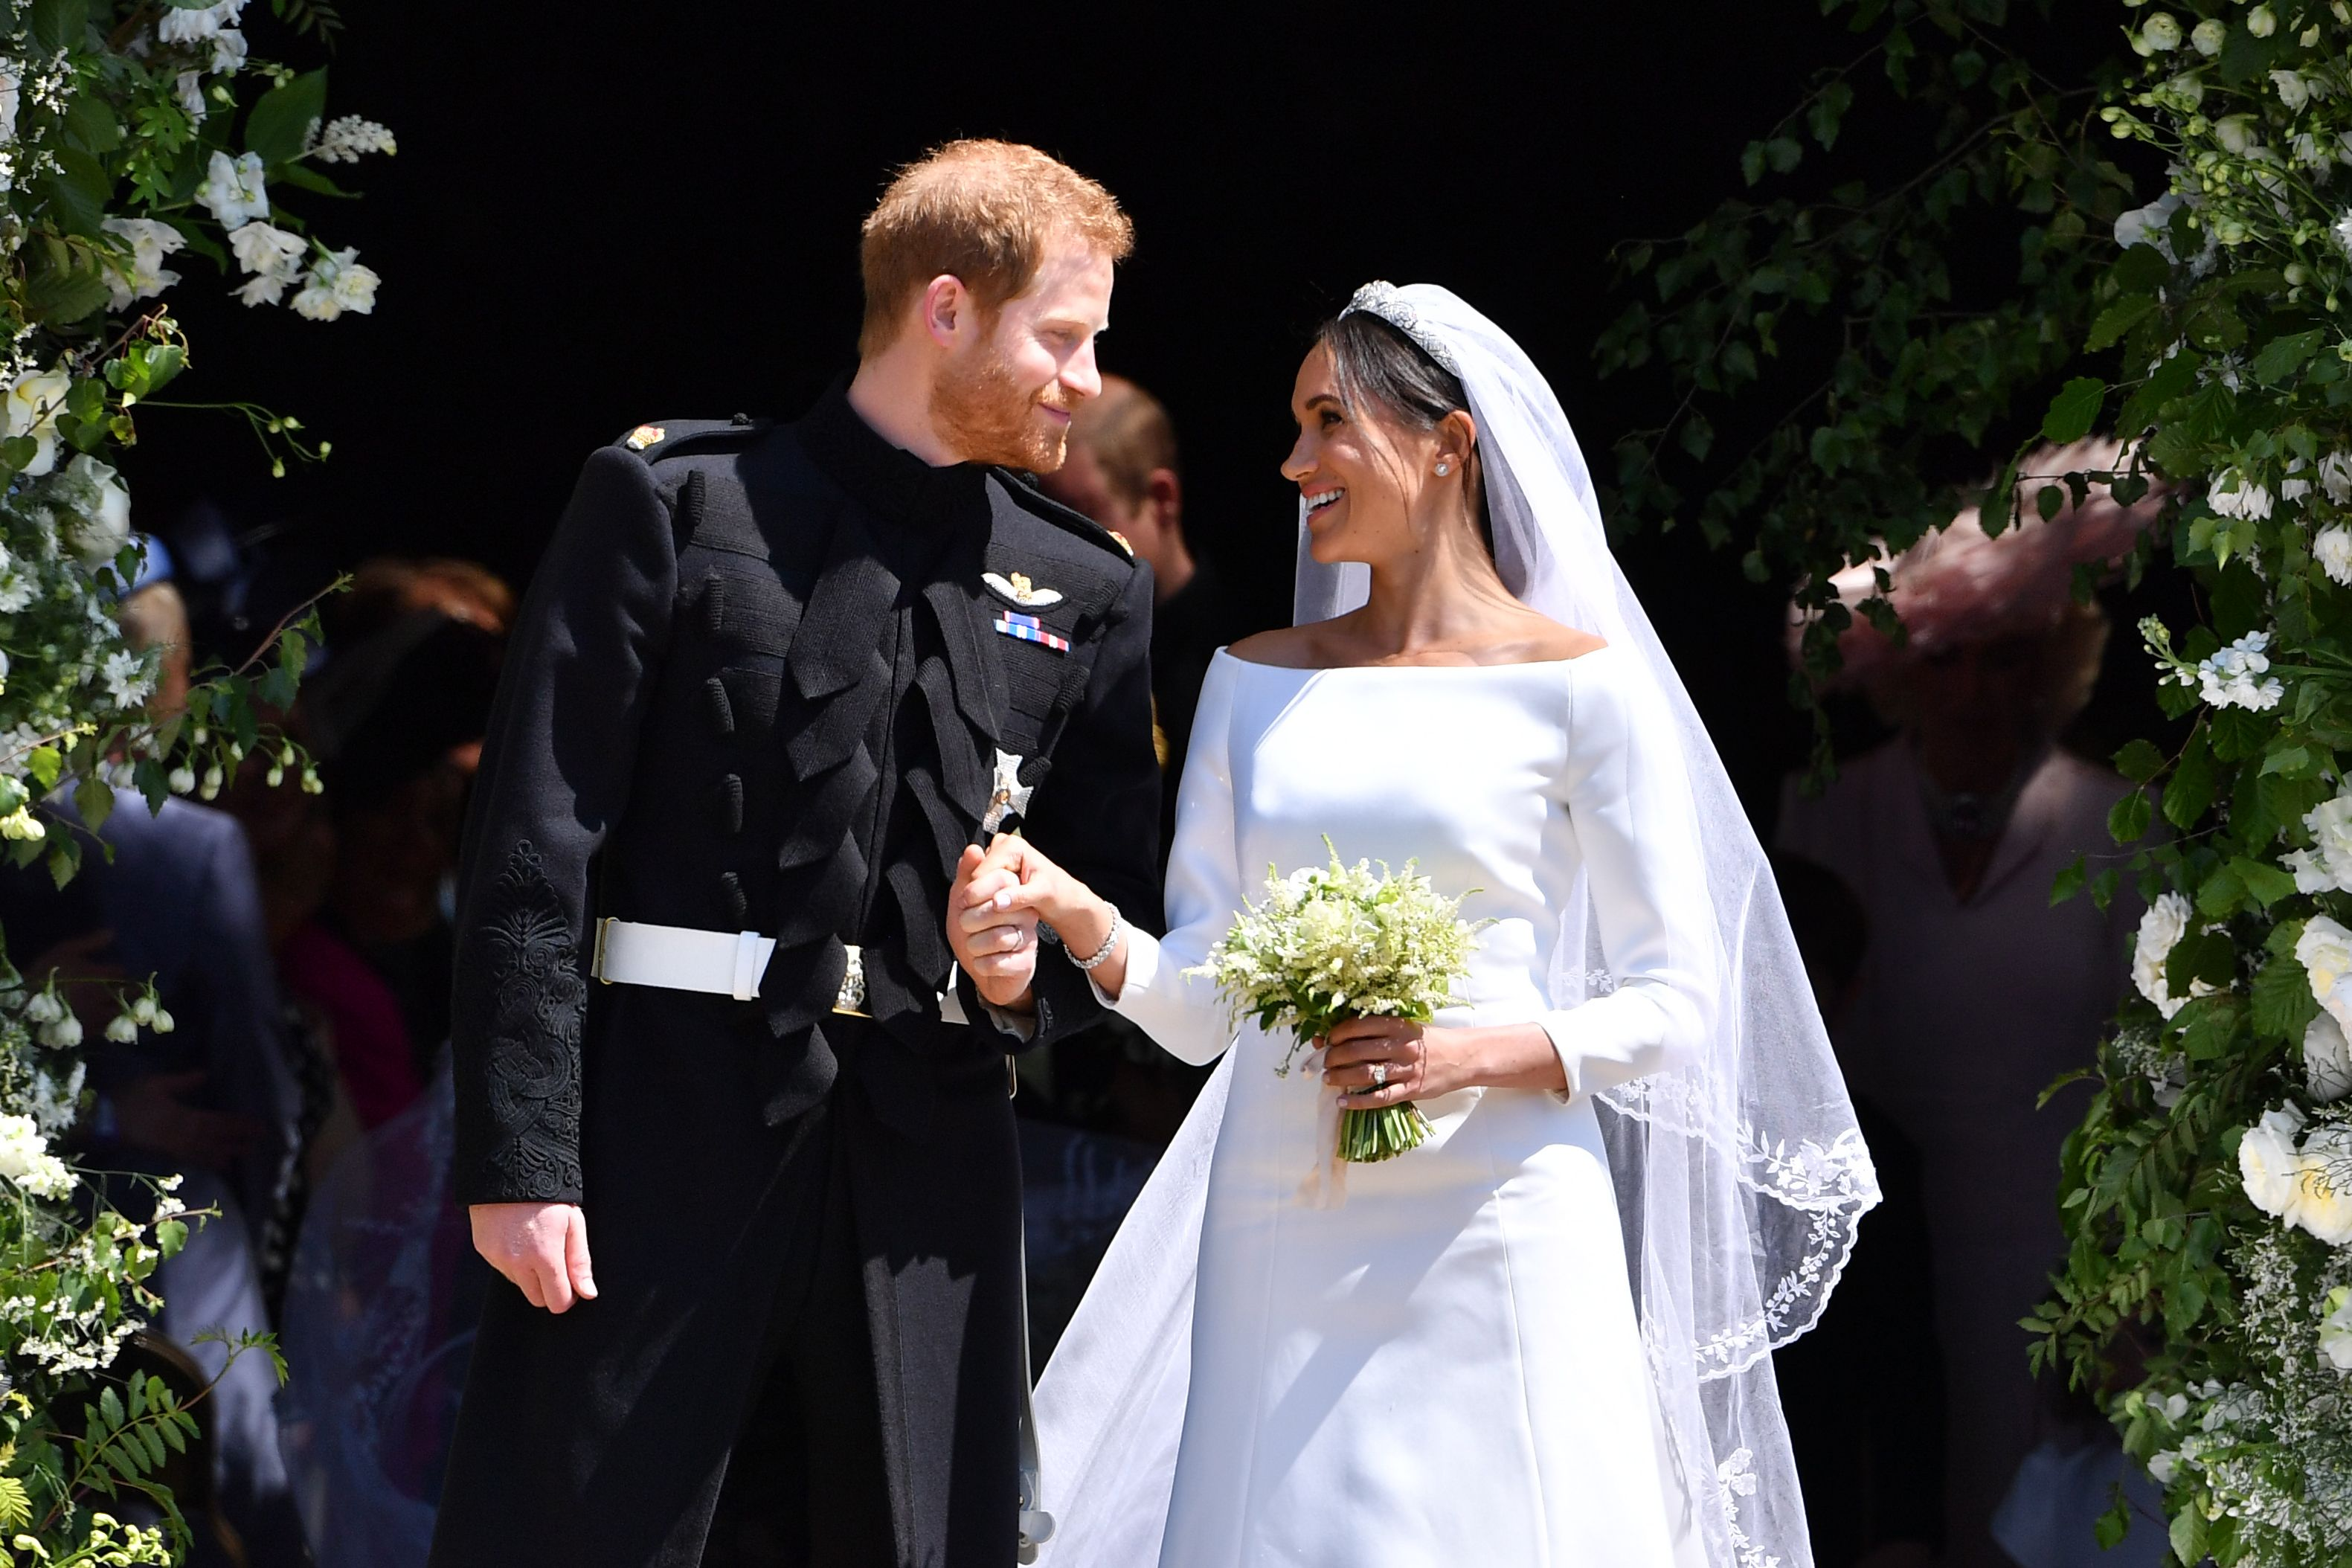 Cbs Royal Wedding Coverage.Prince Harry And Meghan Markle S Royal Wedding Ratings